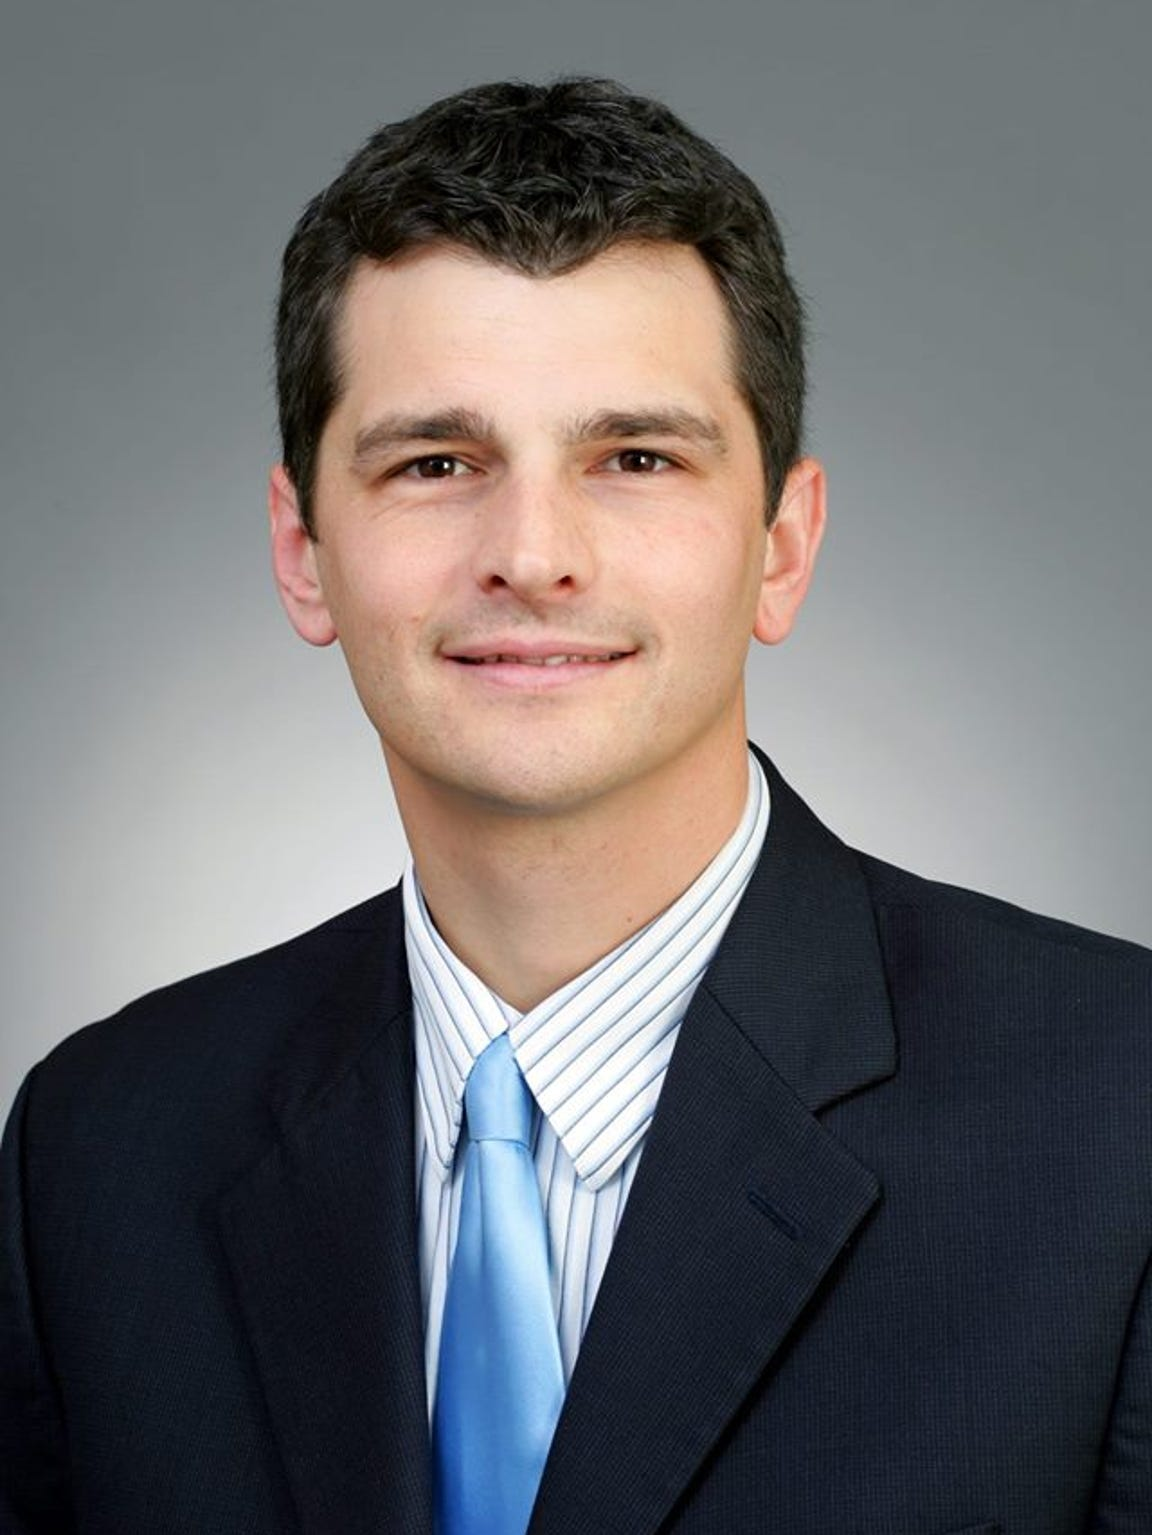 Josh Mareschal Is an attorney who is also involved